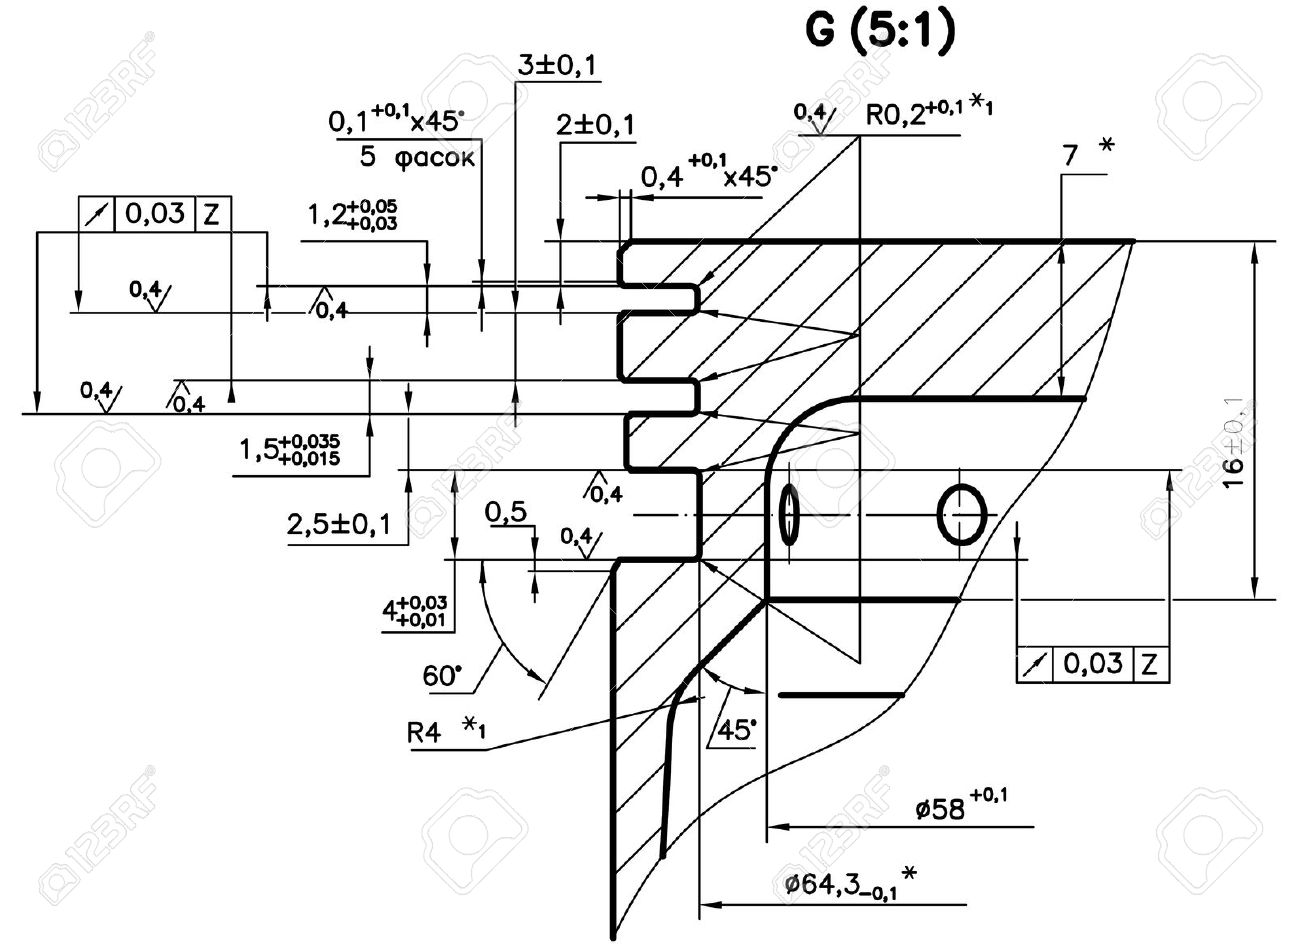 hight resolution of design drawings of nonexistent internal combustion engine piston clipping path stock photo